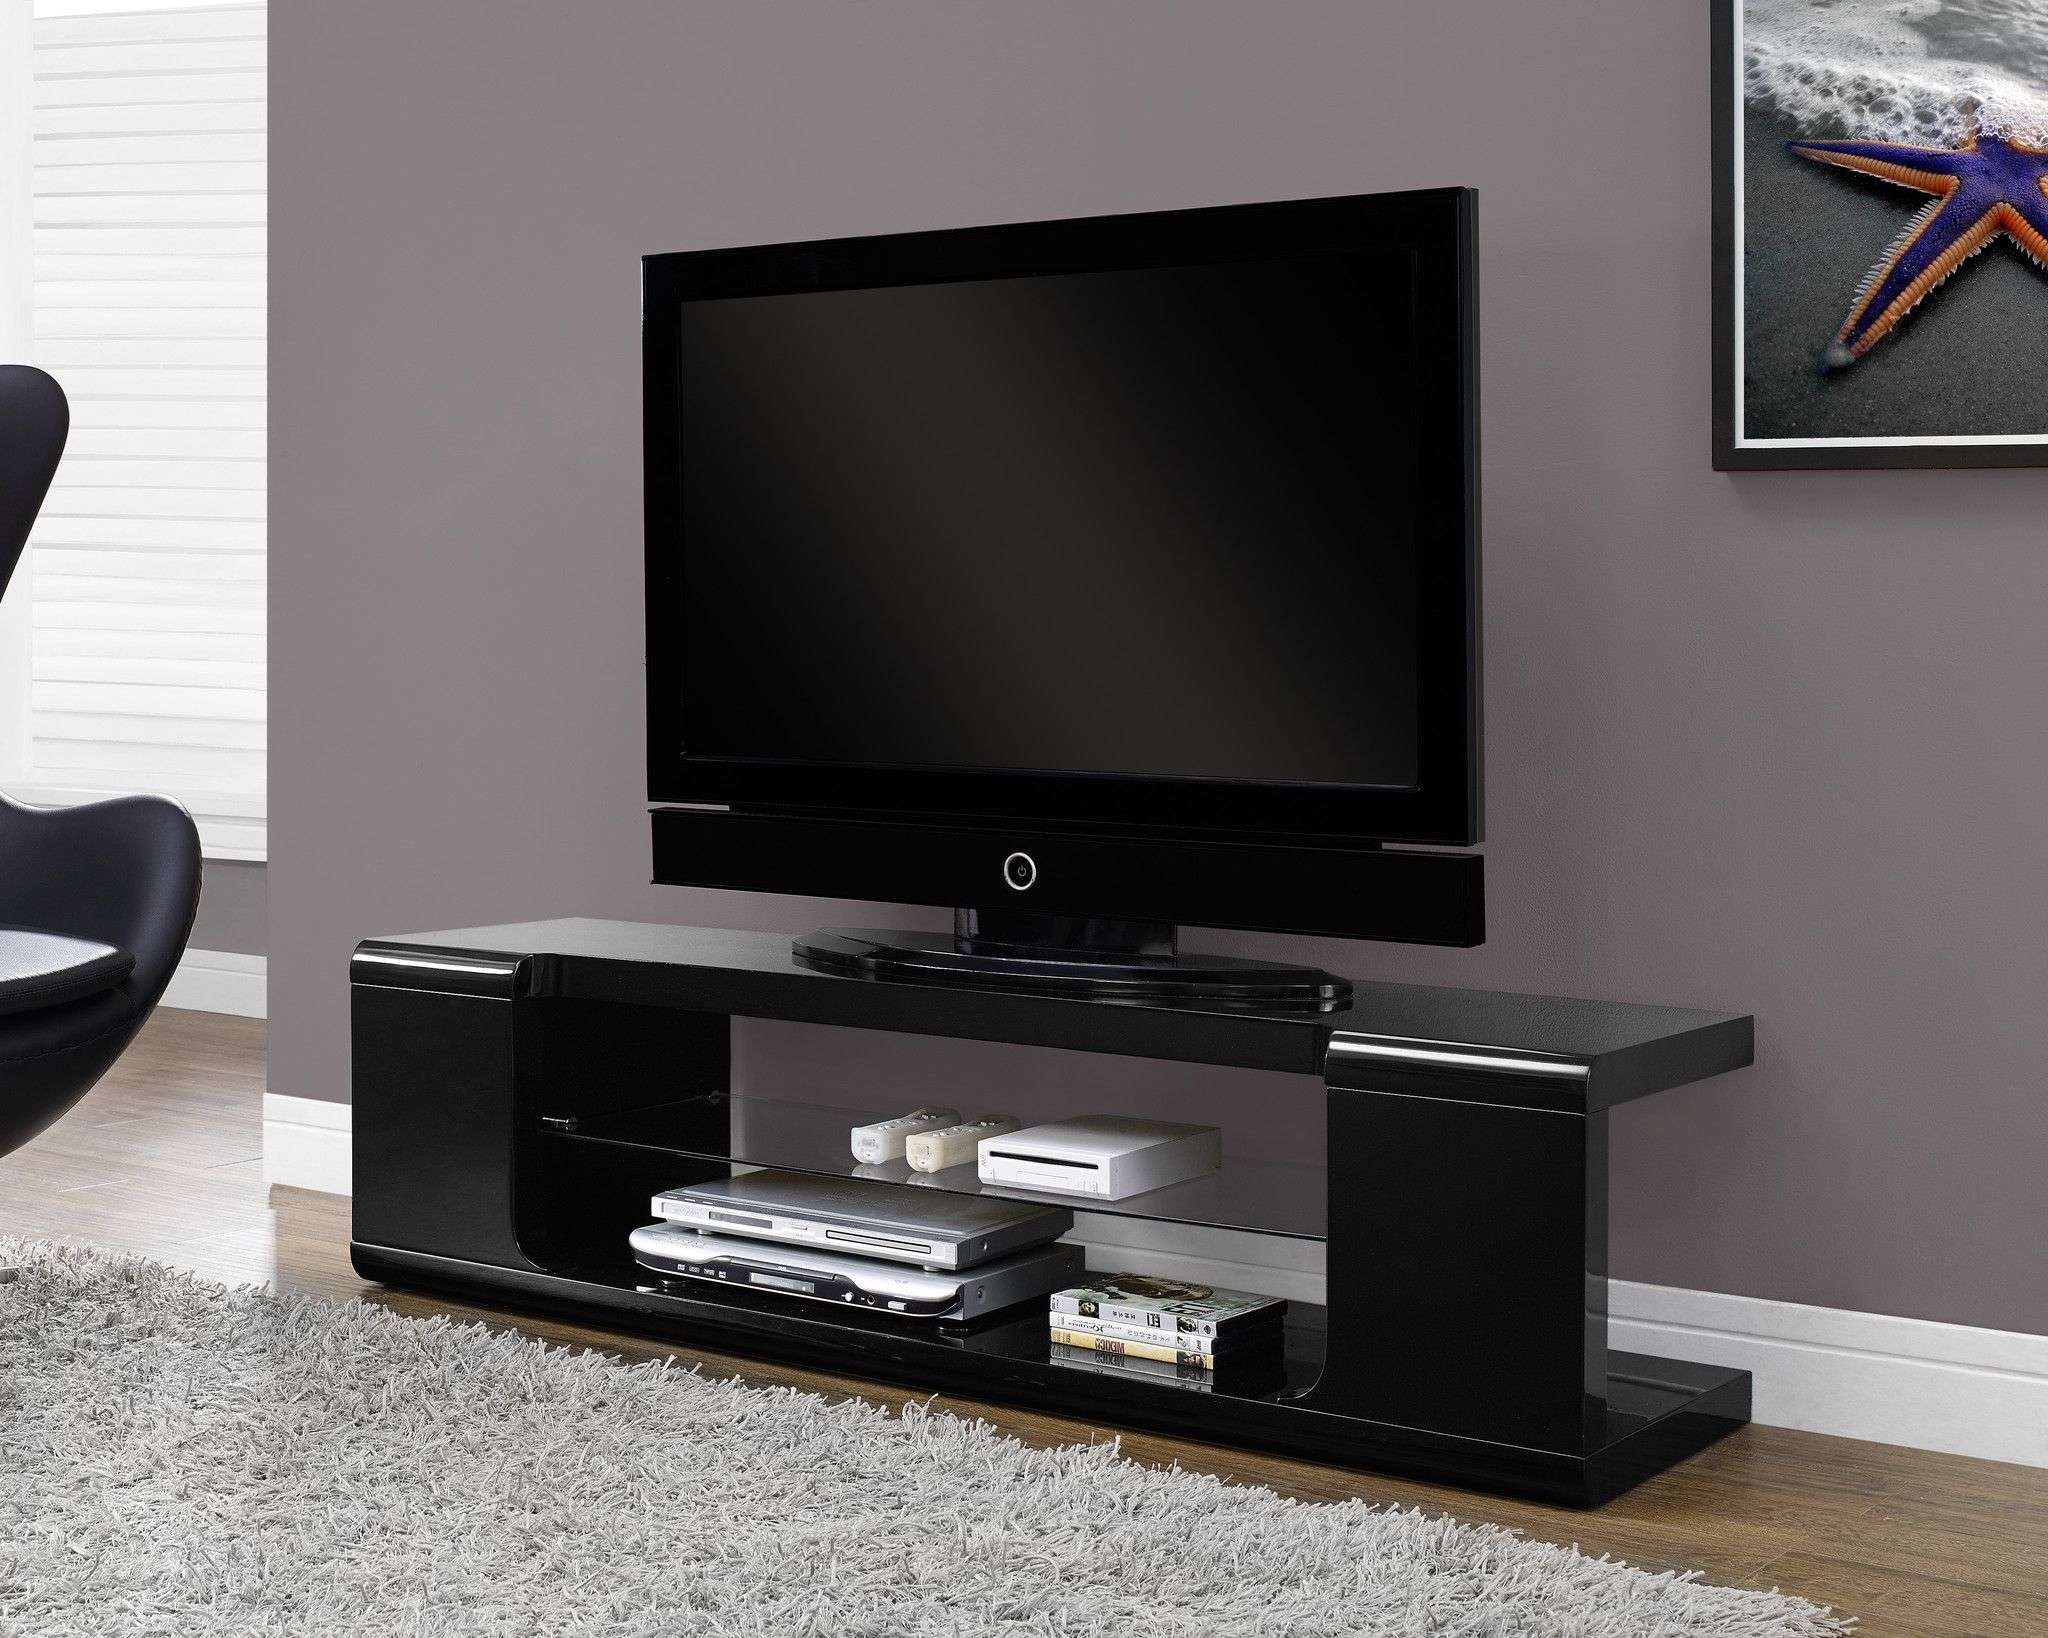 Tv Stand With Rounded Corners 36 With Tv Stand With Rounded With Tv Stands With Rounded Corners (View 13 of 15)